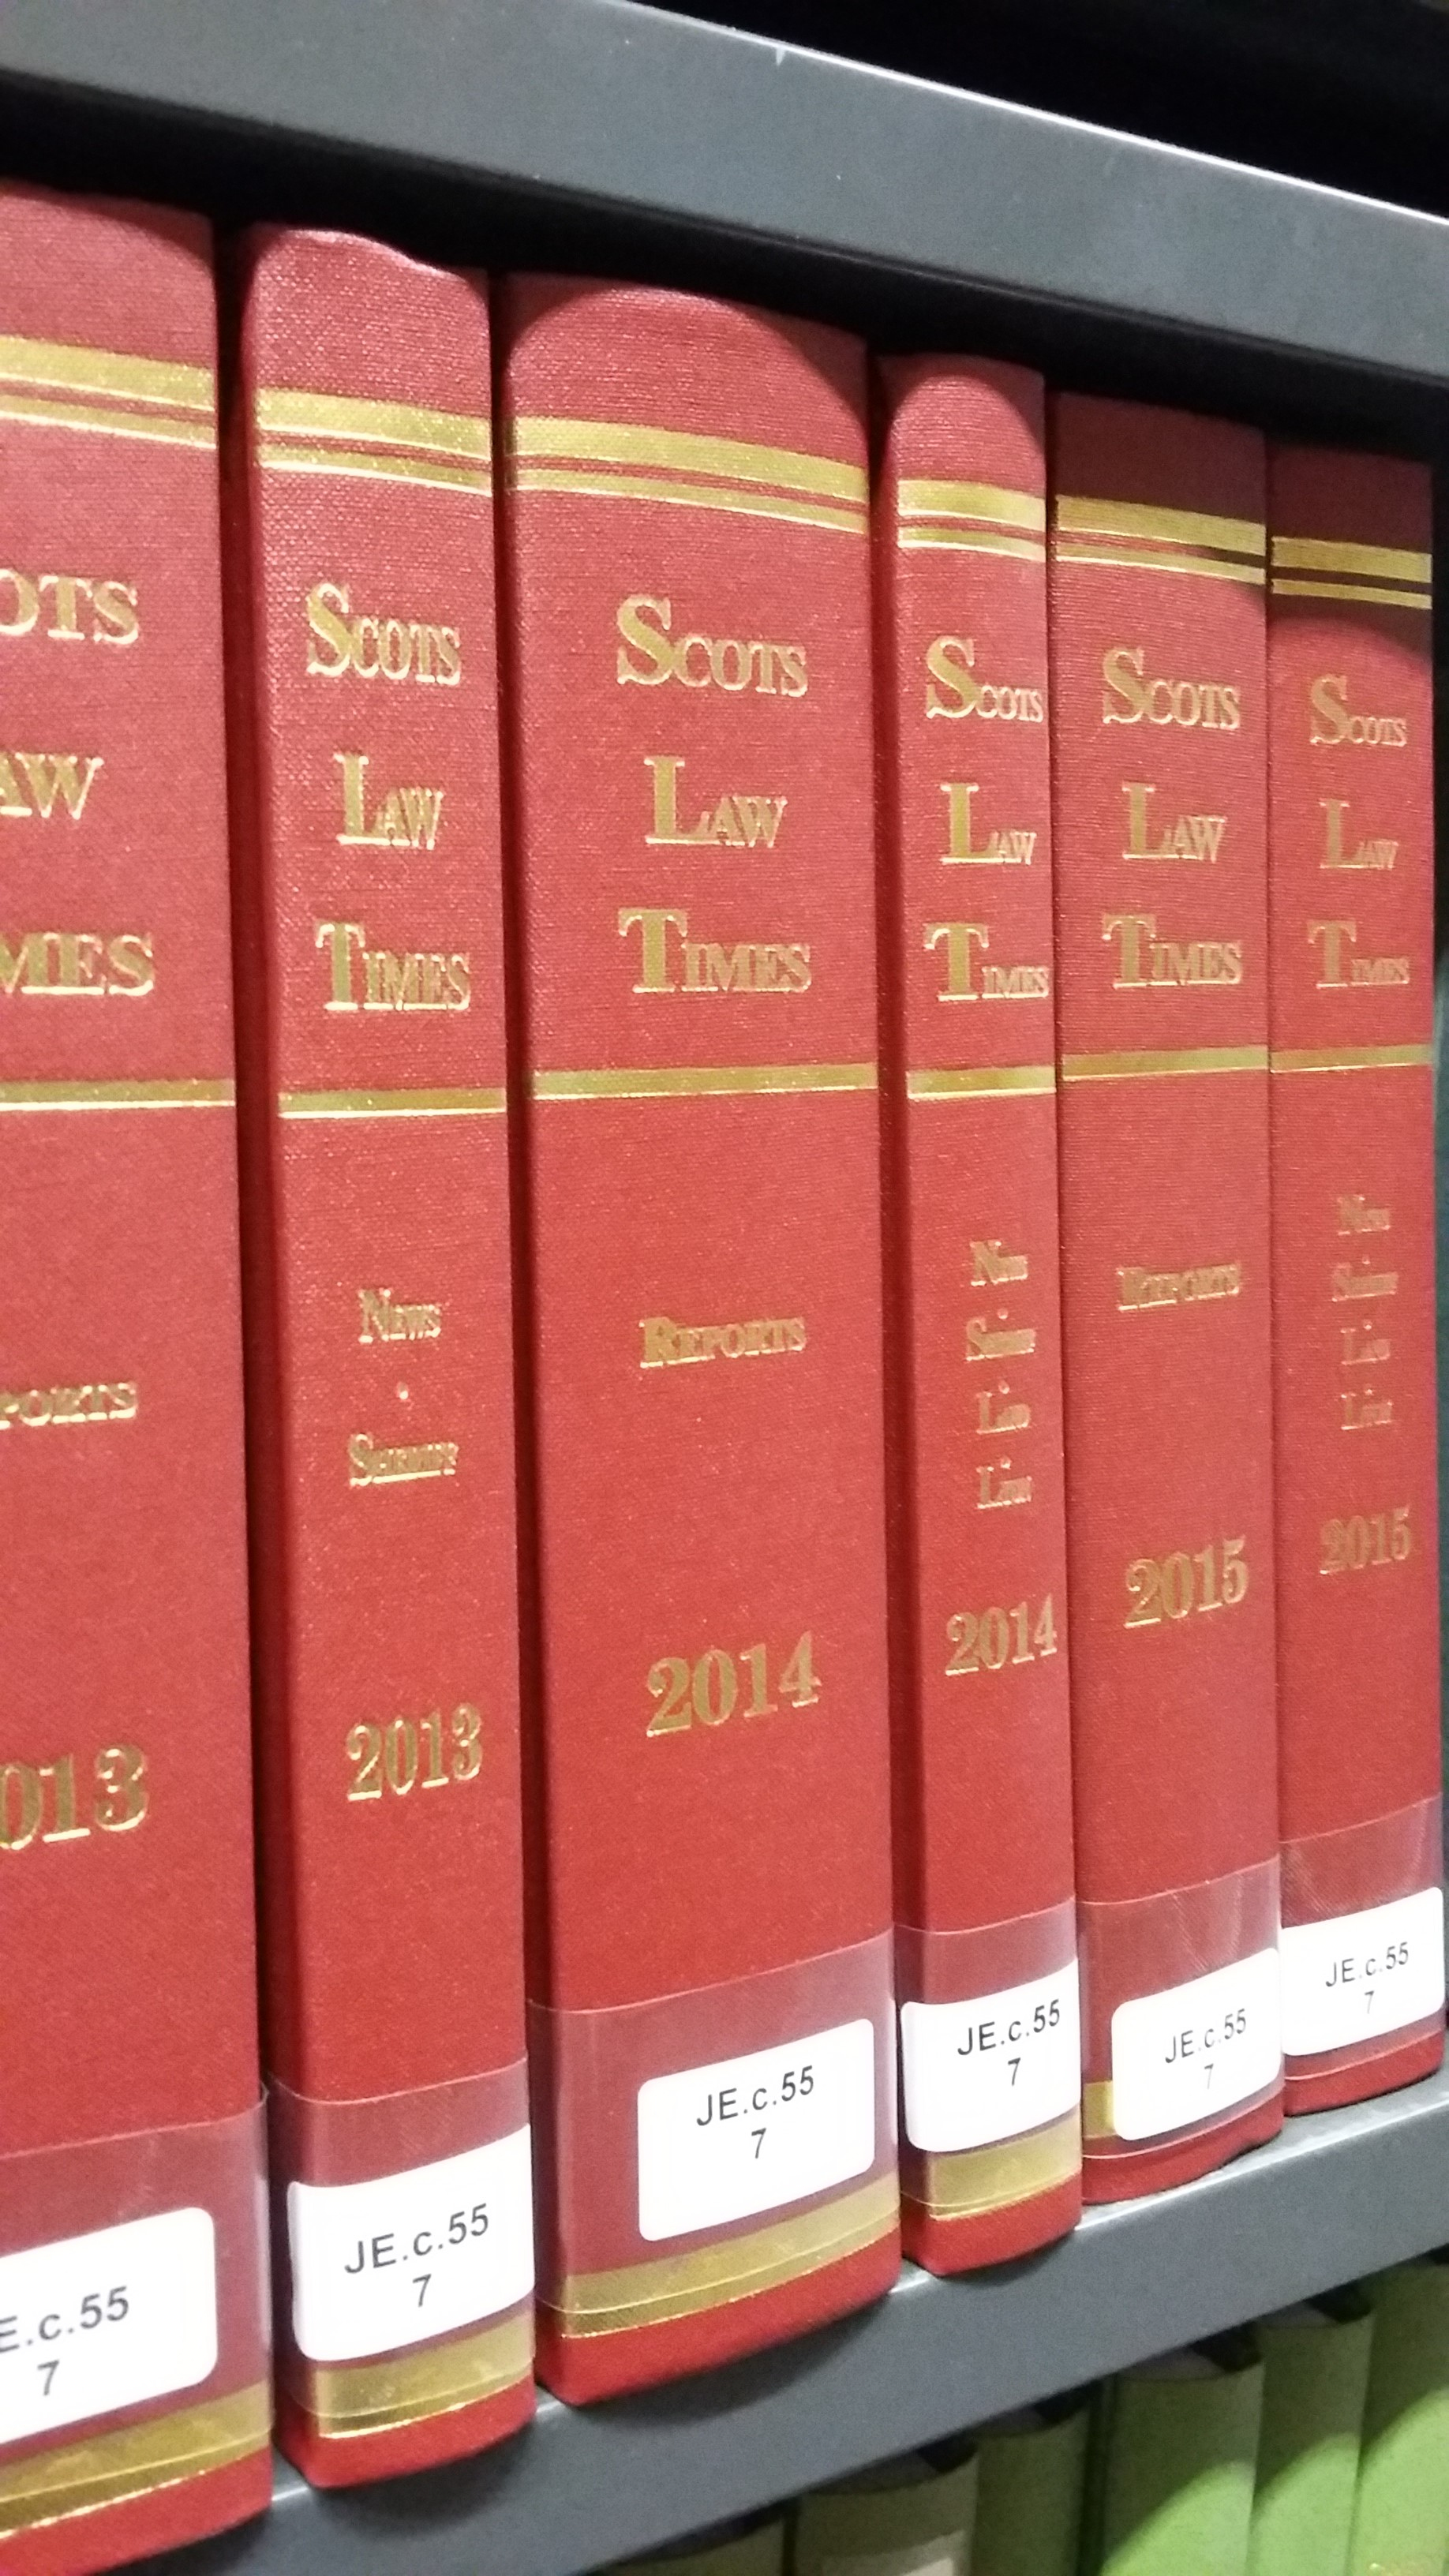 Photo of the red volumes with gold lettering of the Scots Law Times on a shelf in the Squire Law Library.